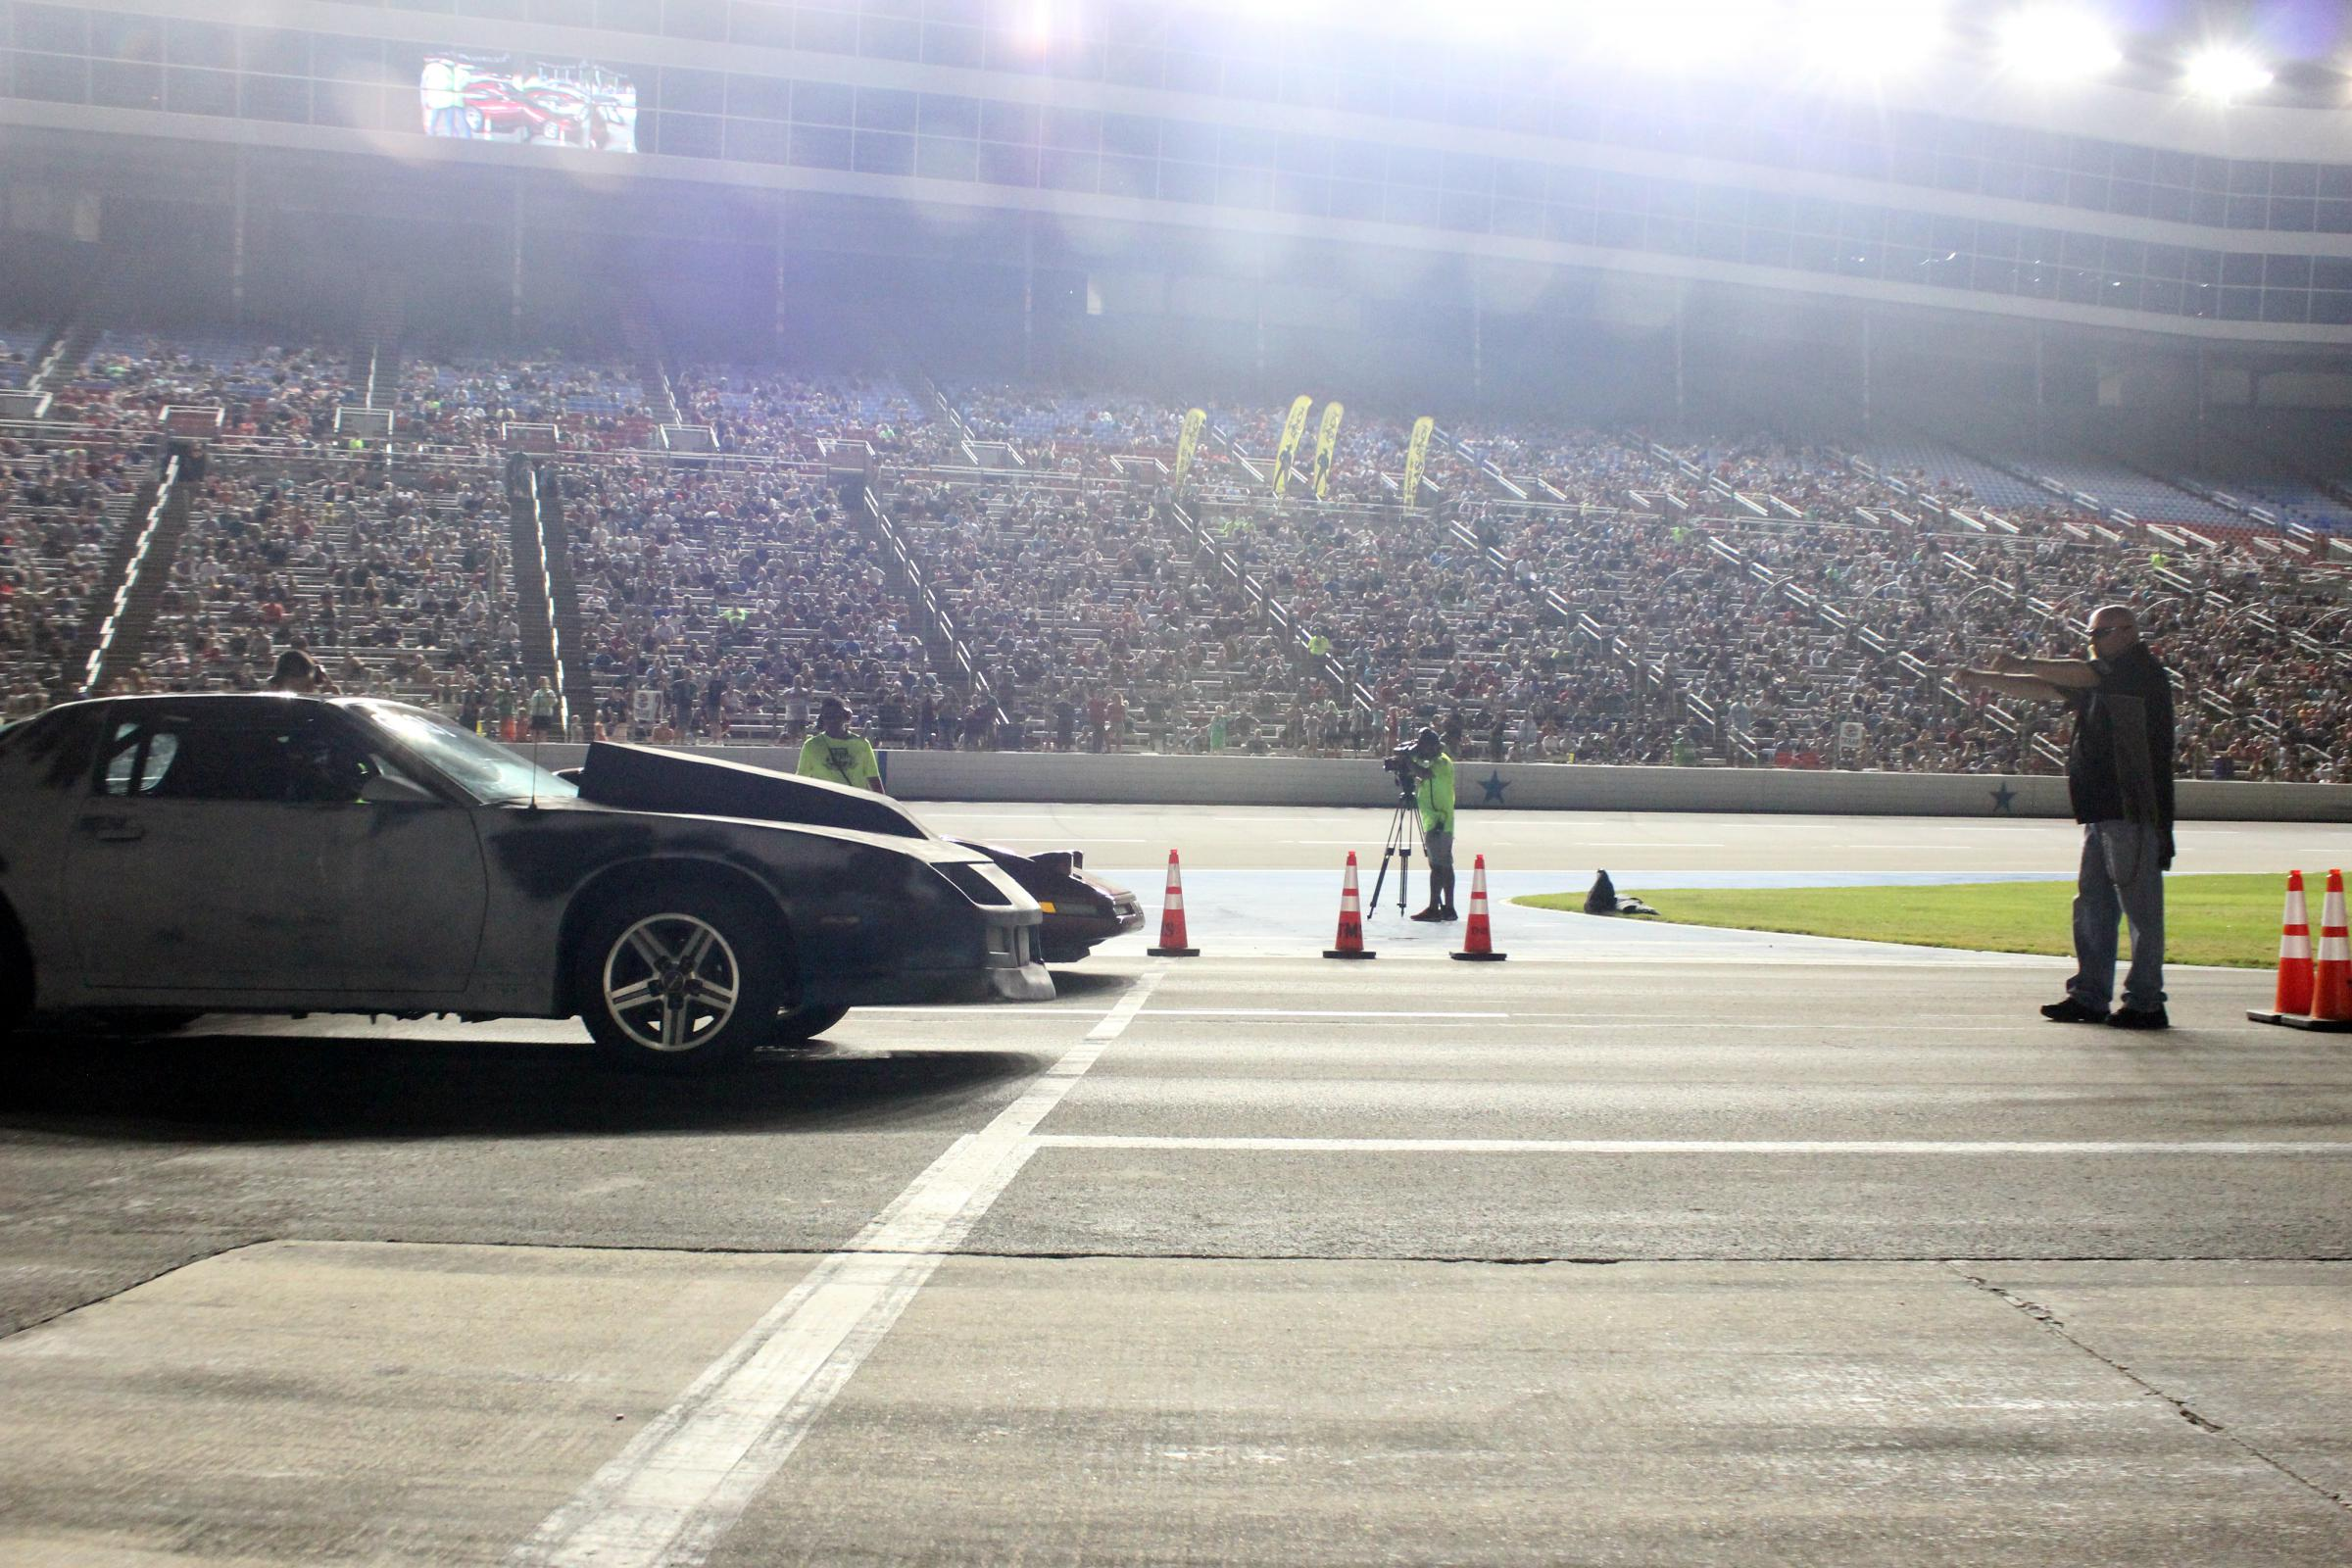 Cars at the start line wait for the signal to speed down the one-eighth-mile drag at the Texas Motor Speedway in Fort Worth, Texas.